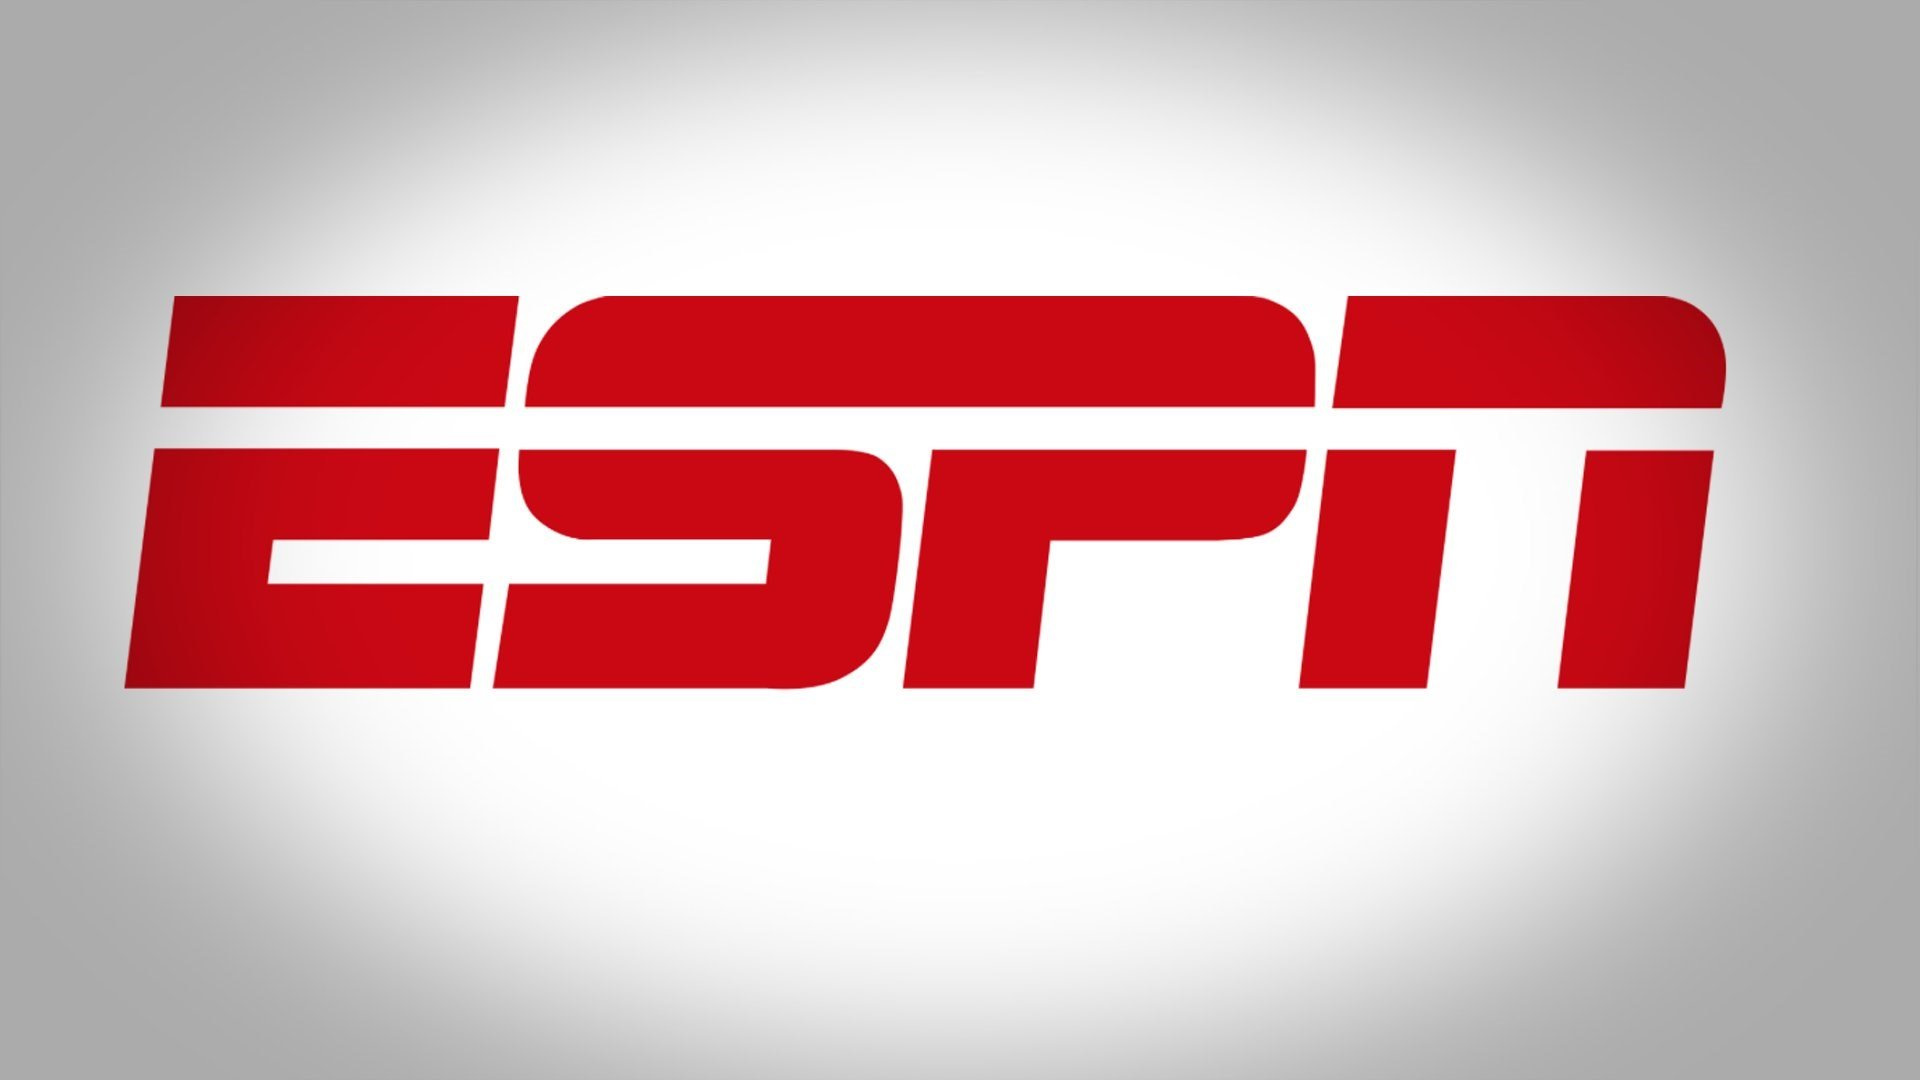 ESPN Plus Streaming Service Debuts in Spring for $5/Month